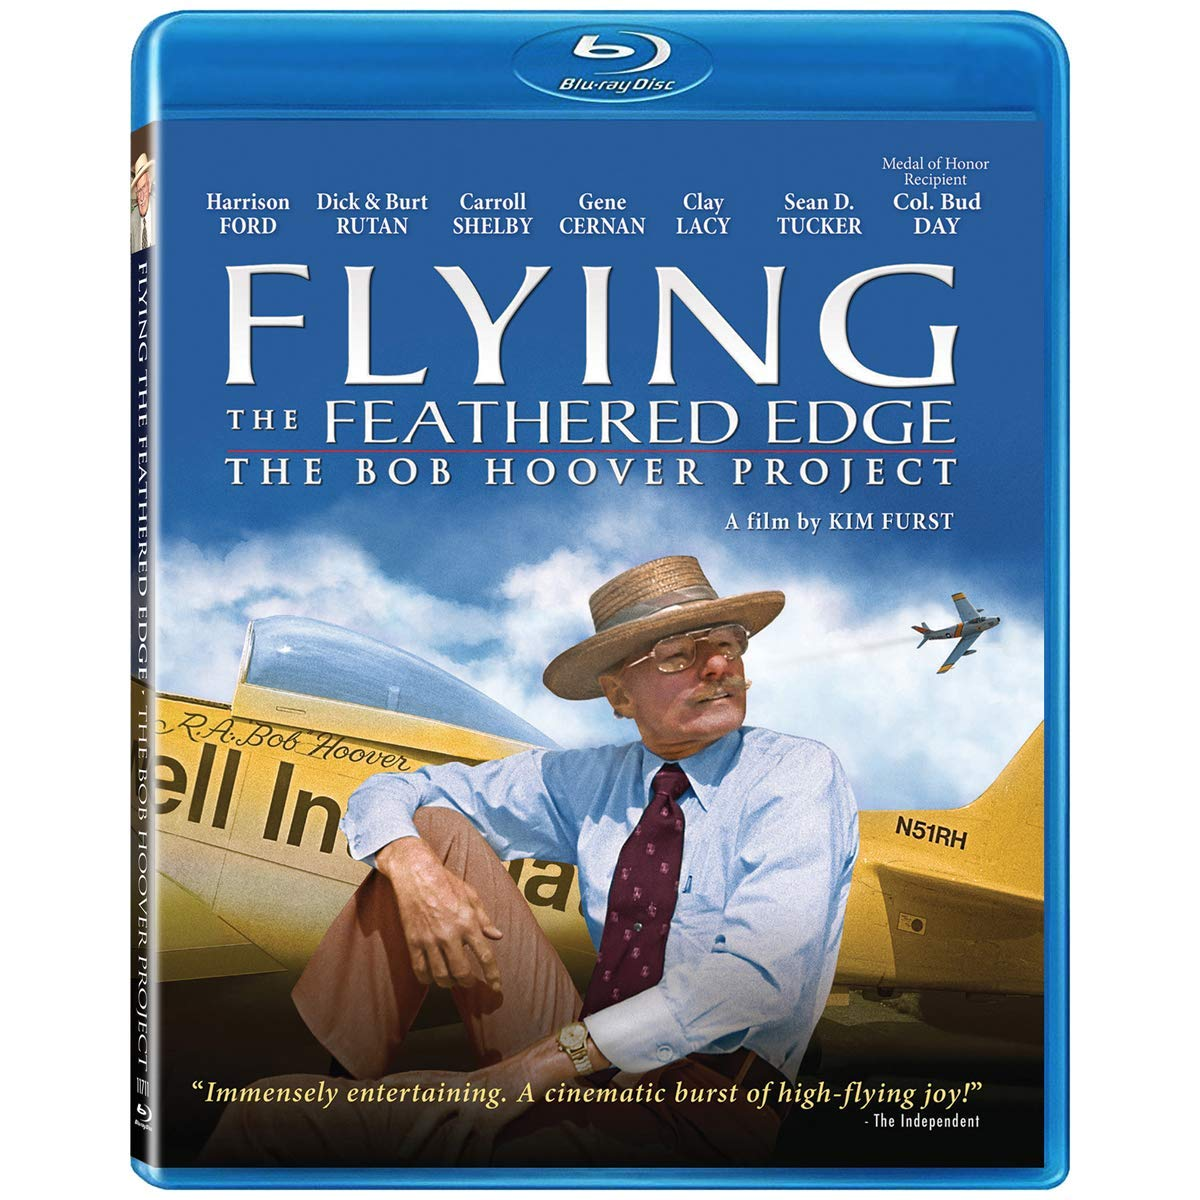 NEW The Bob Hoover Project-BluRay FREE SHIPPING Flying the Feathered Edge